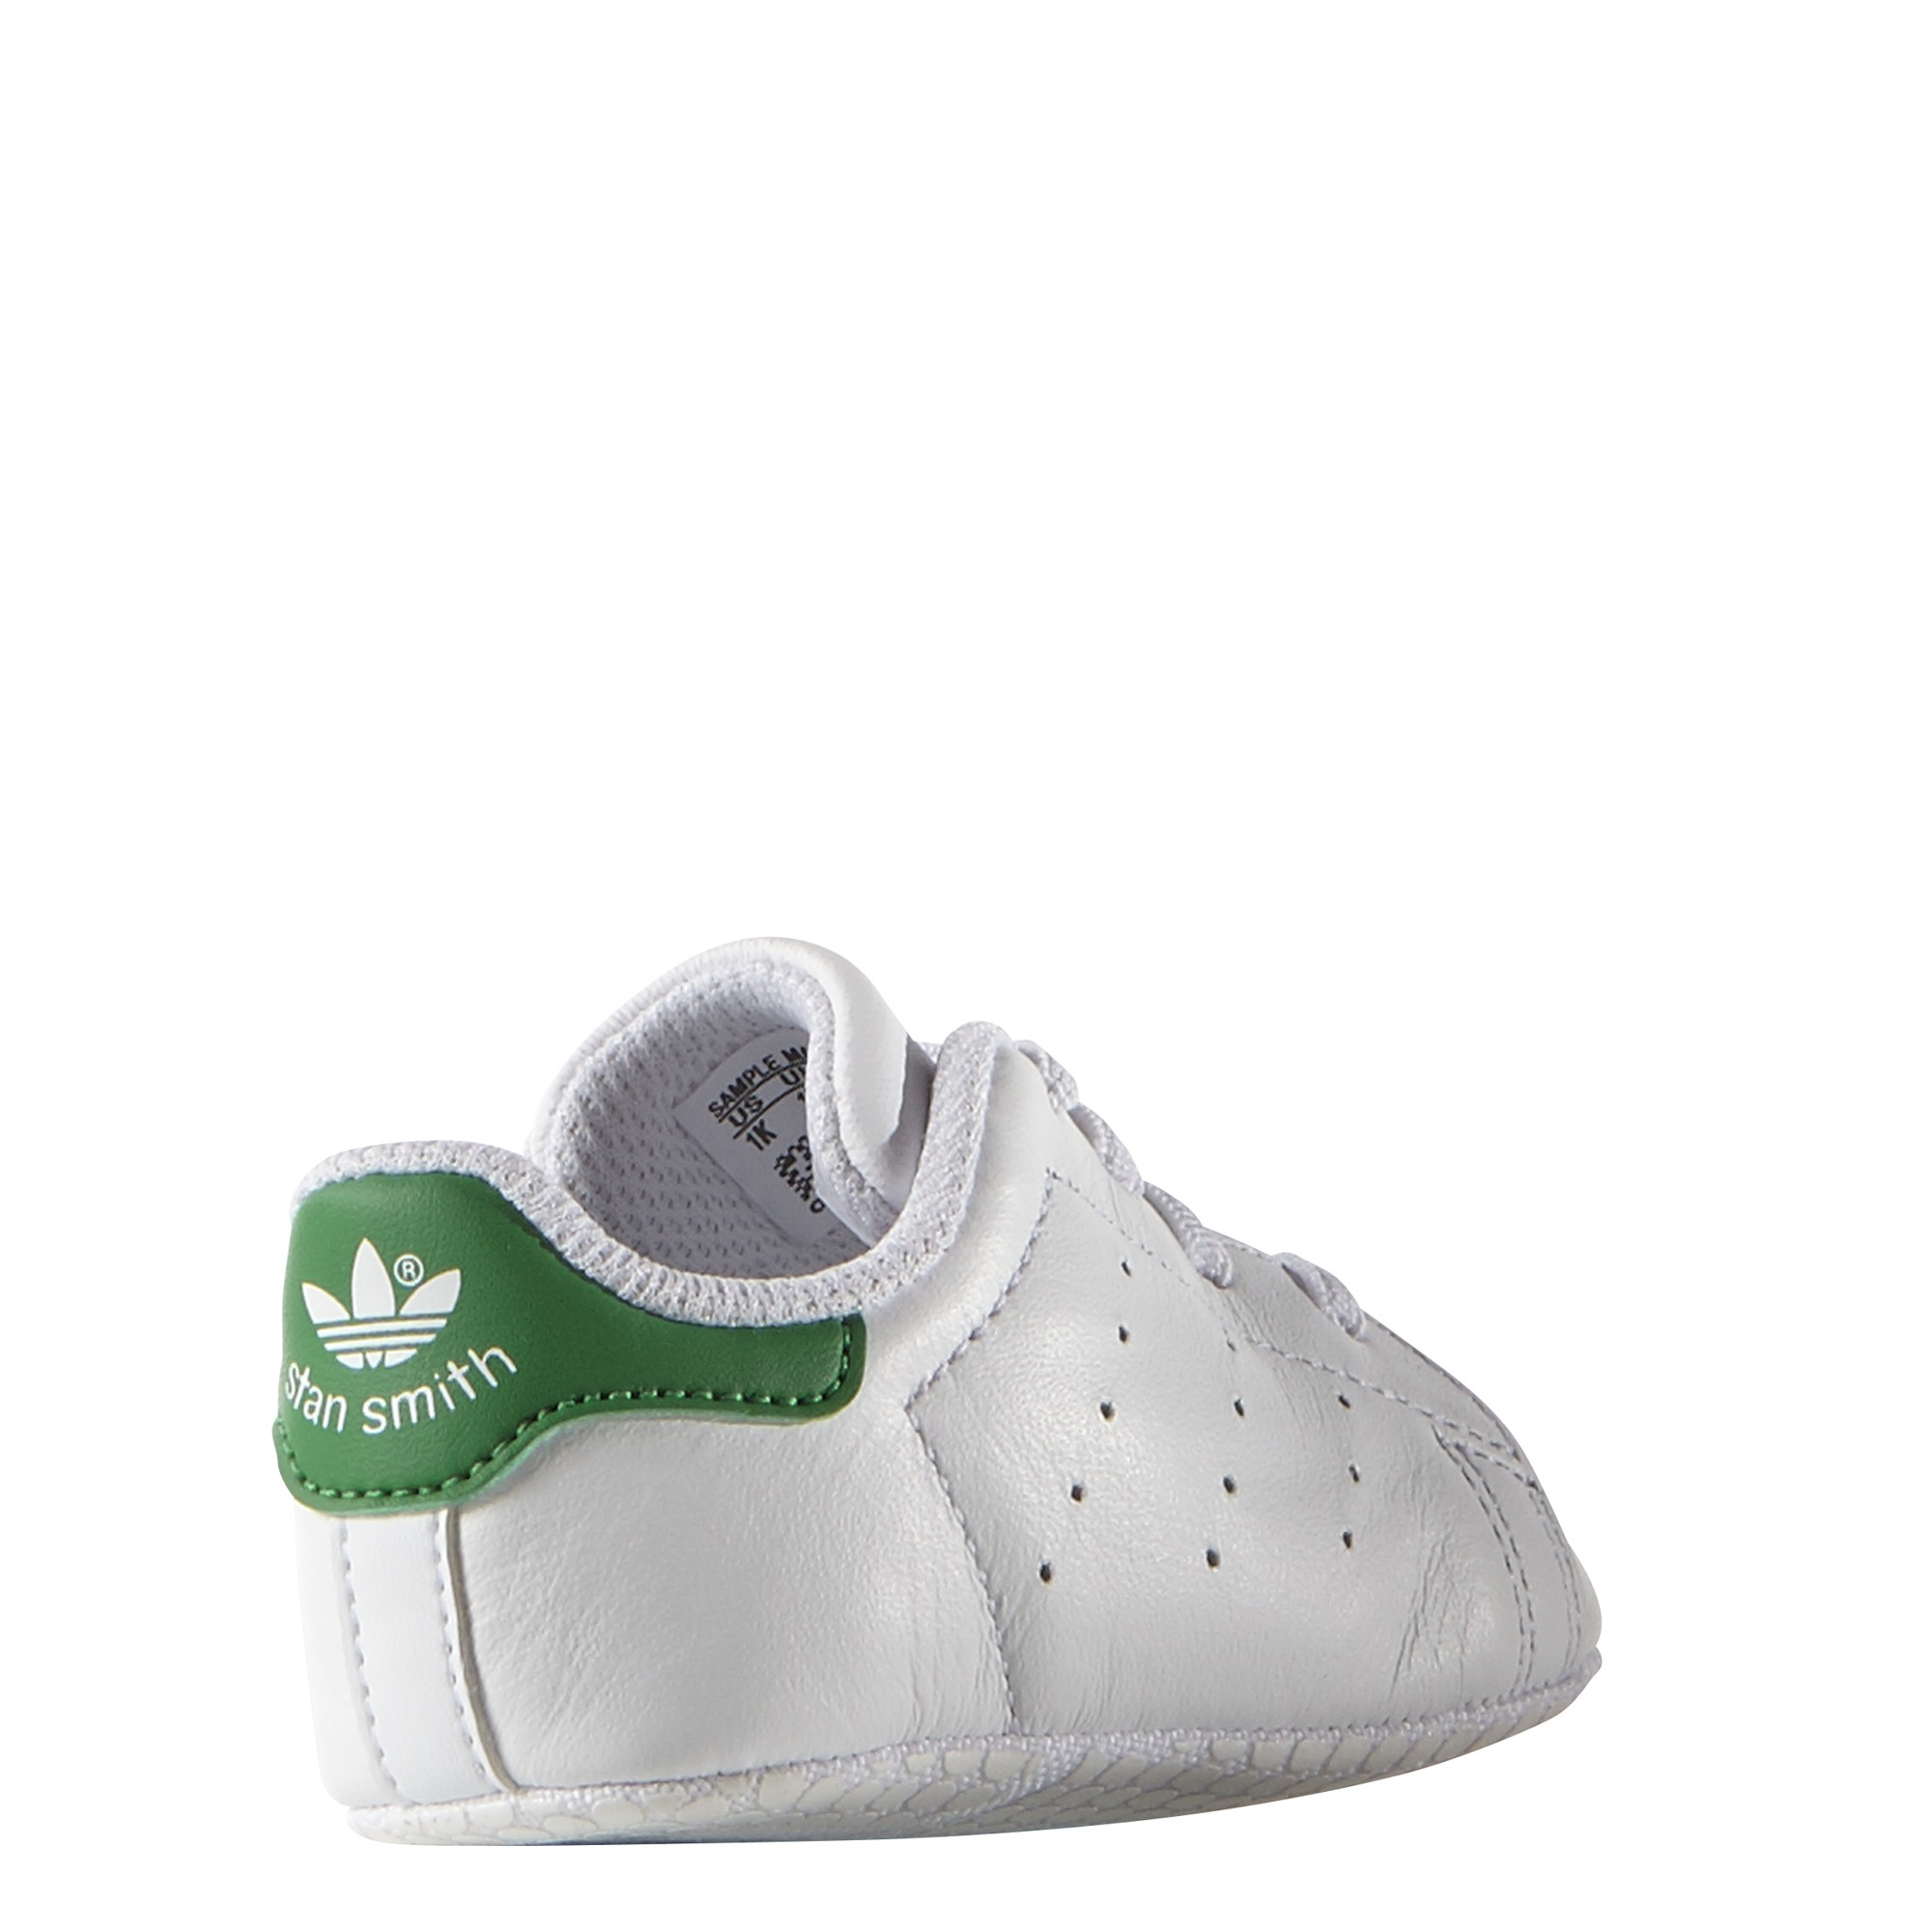 c25985ba0a833 Adidas Originals Baskets Bébé Stan Smith Blanc Vert